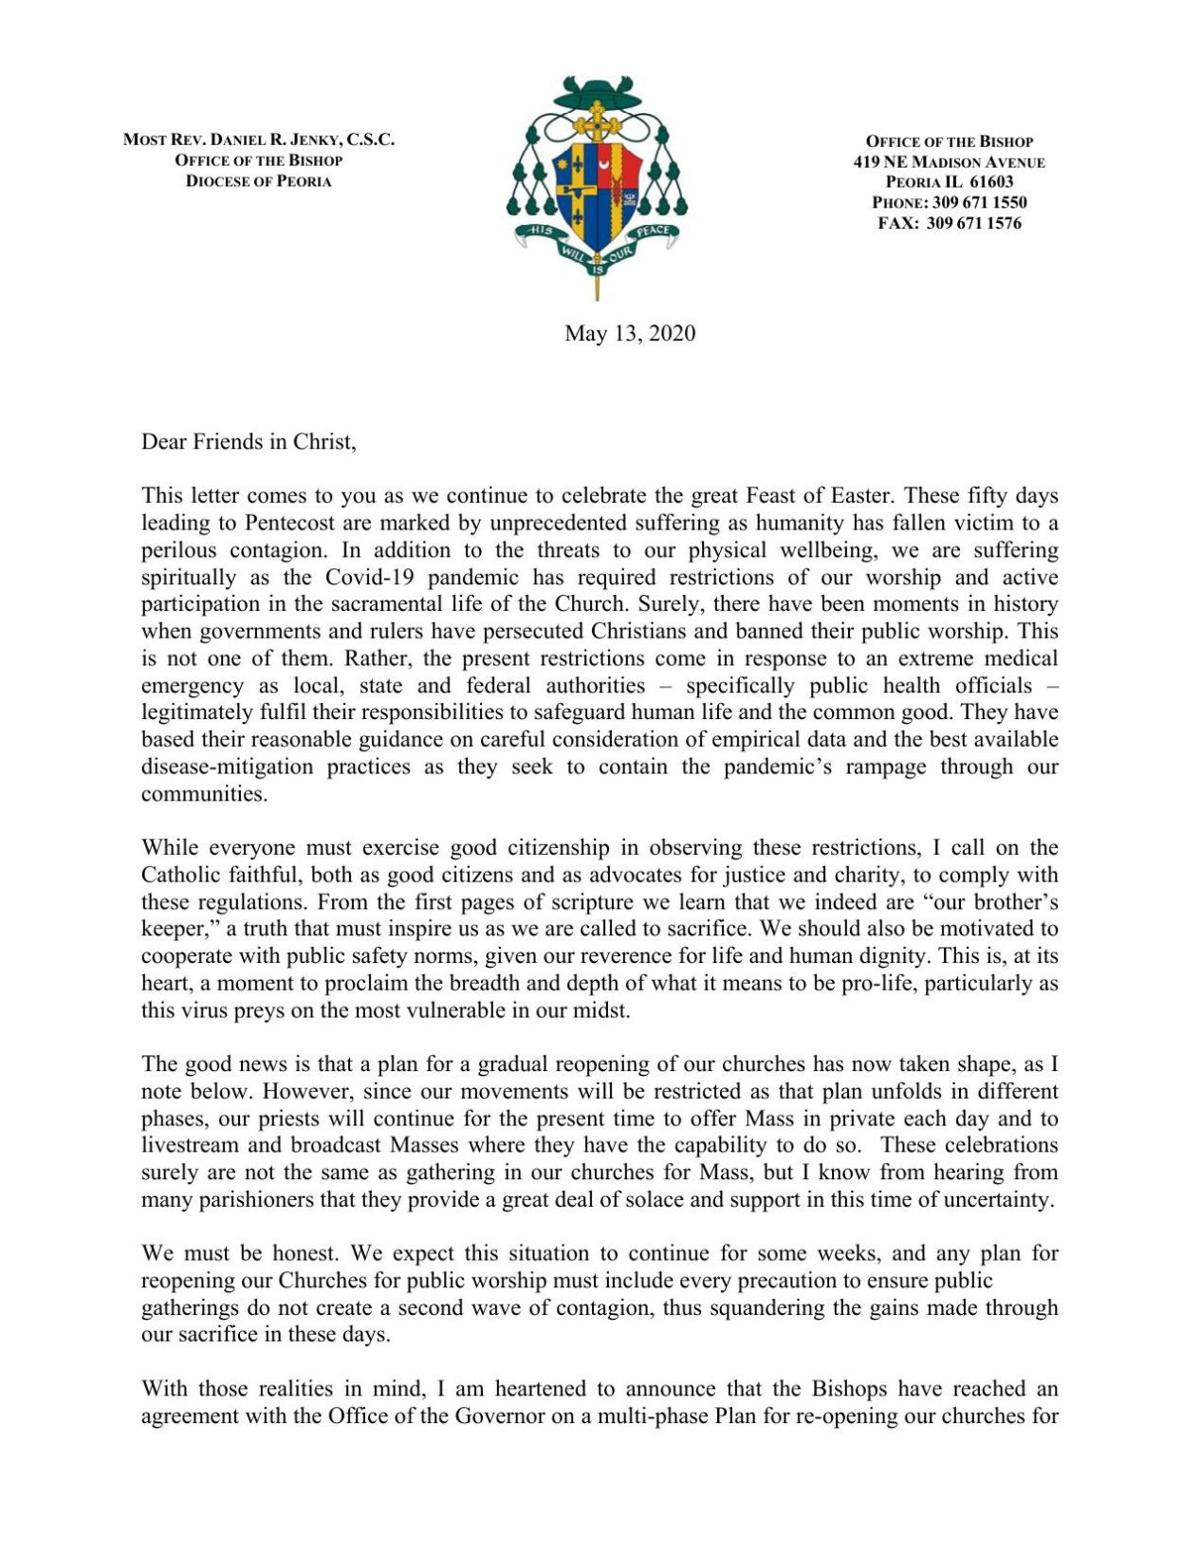 Letter-from-Bishop-Jenky-13-May-2020.pdf